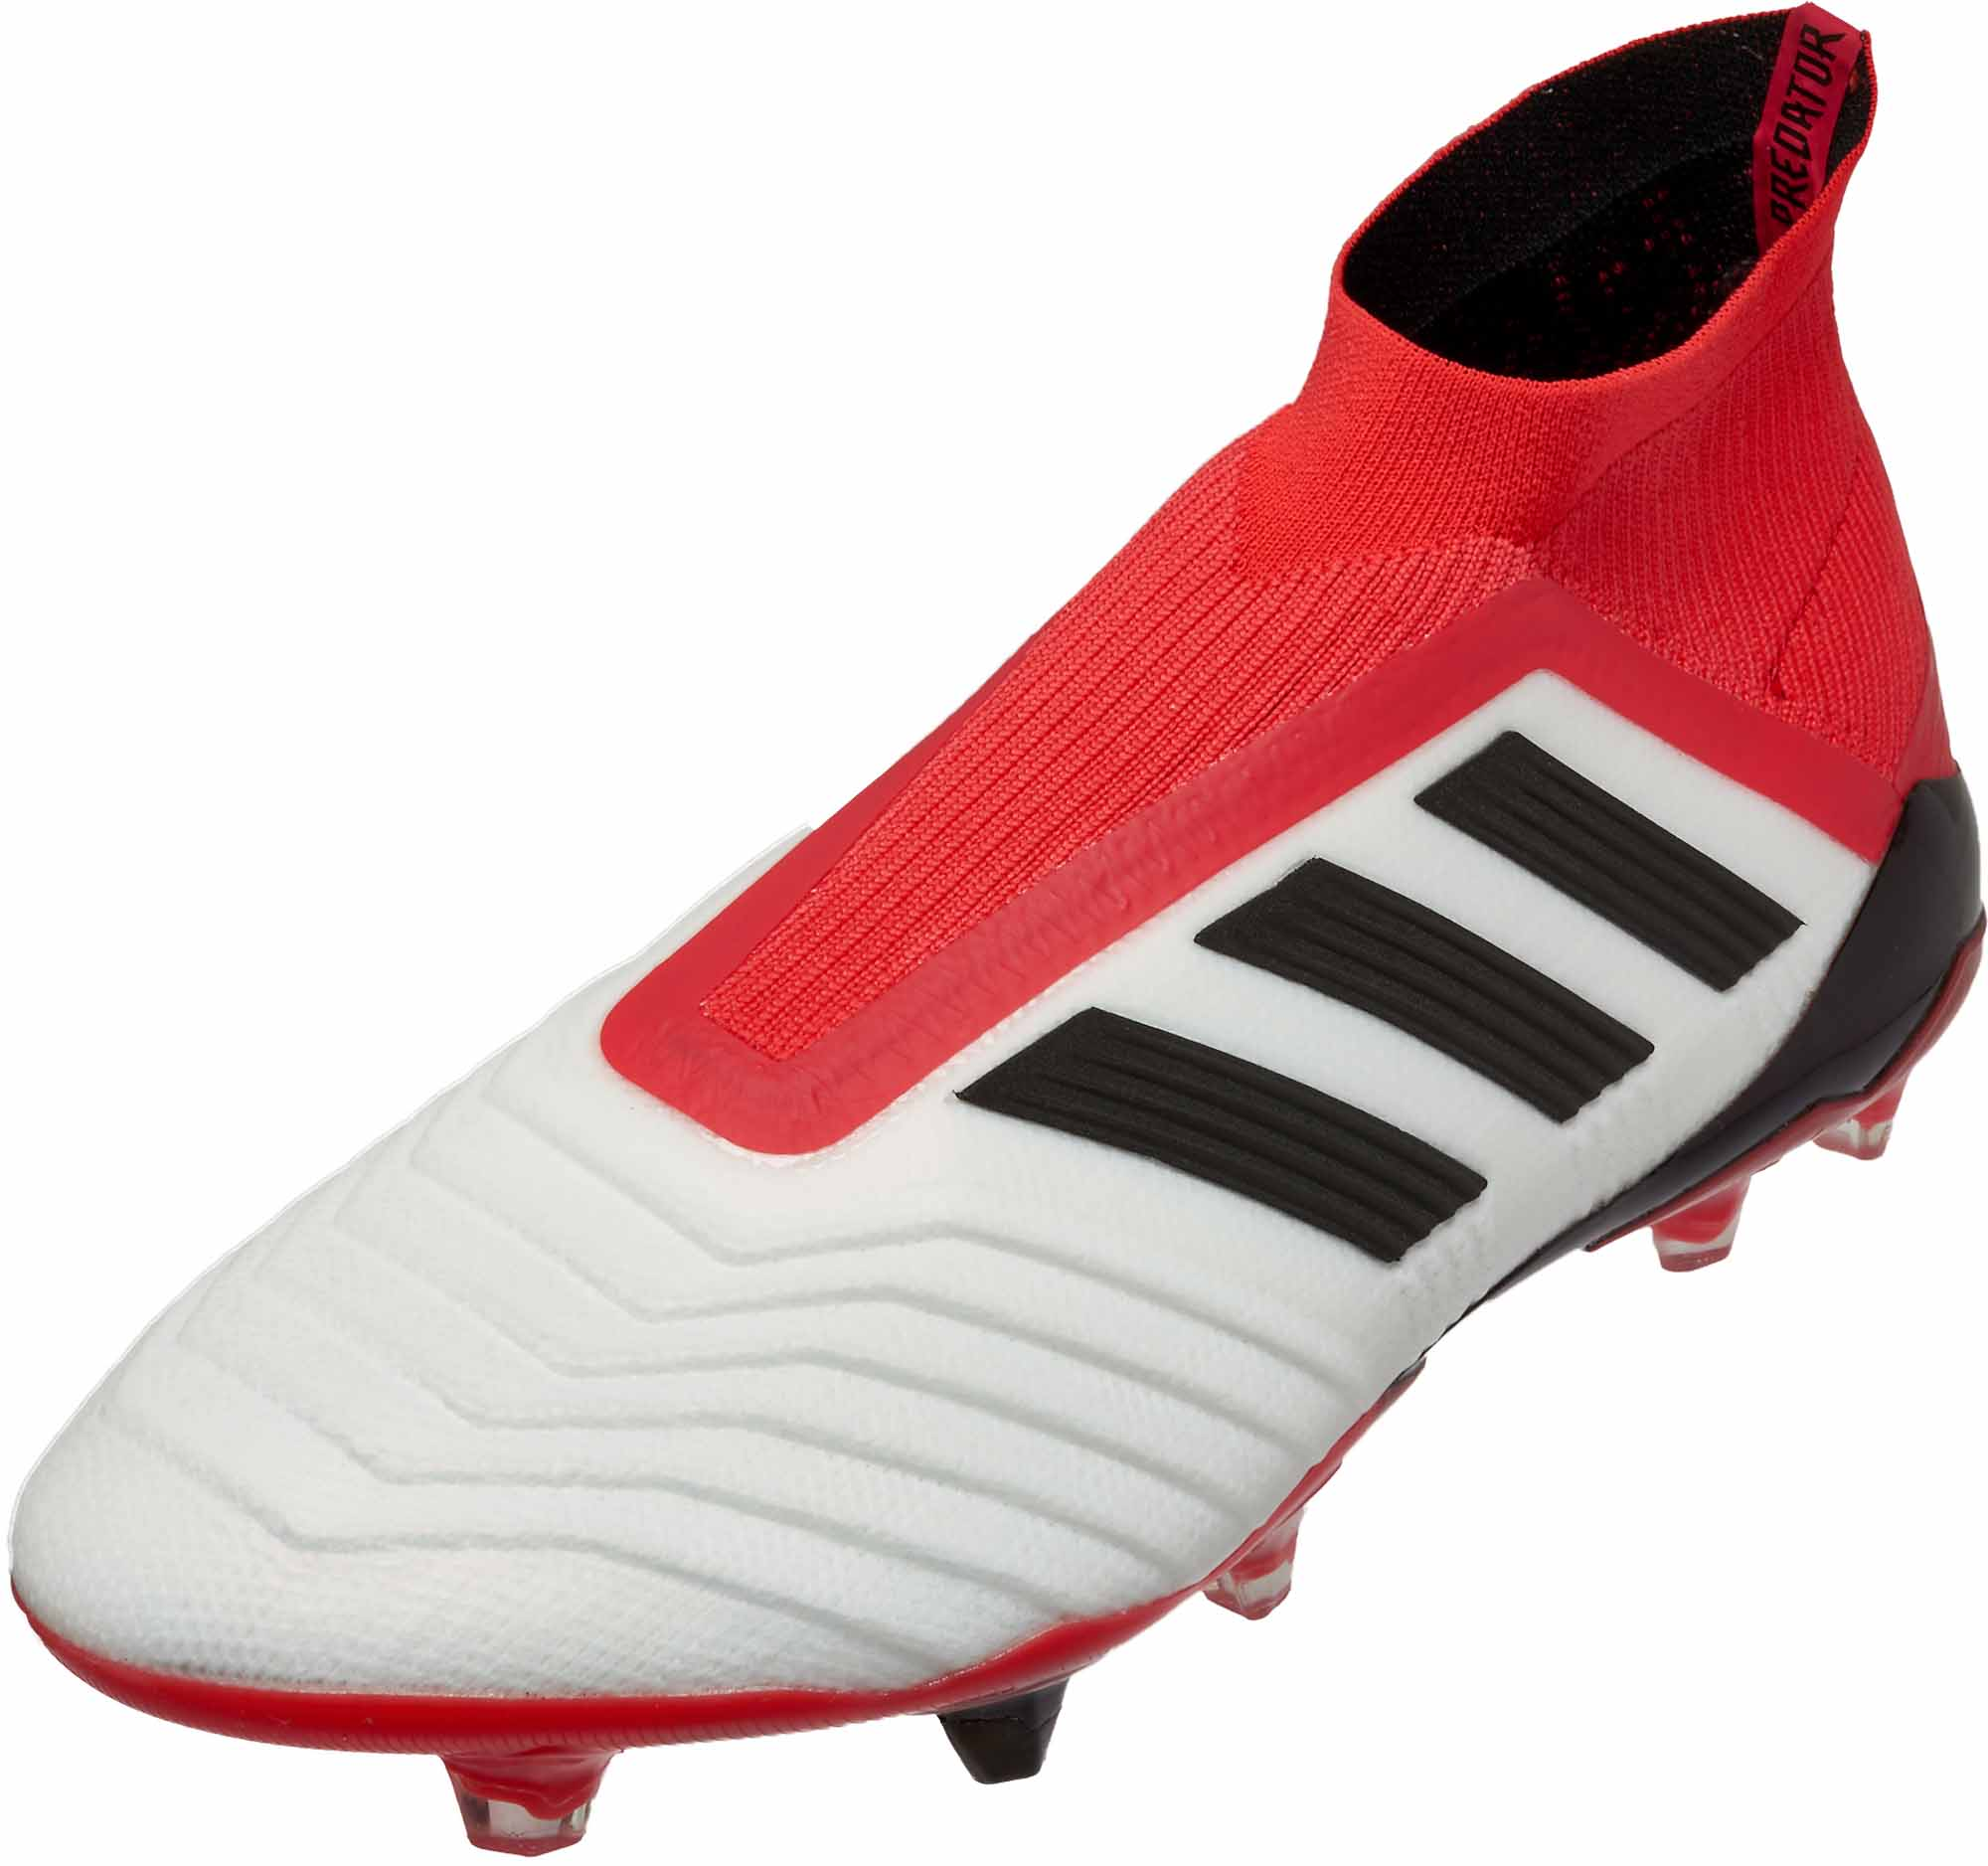 Adidas Goalkeeper Shoes